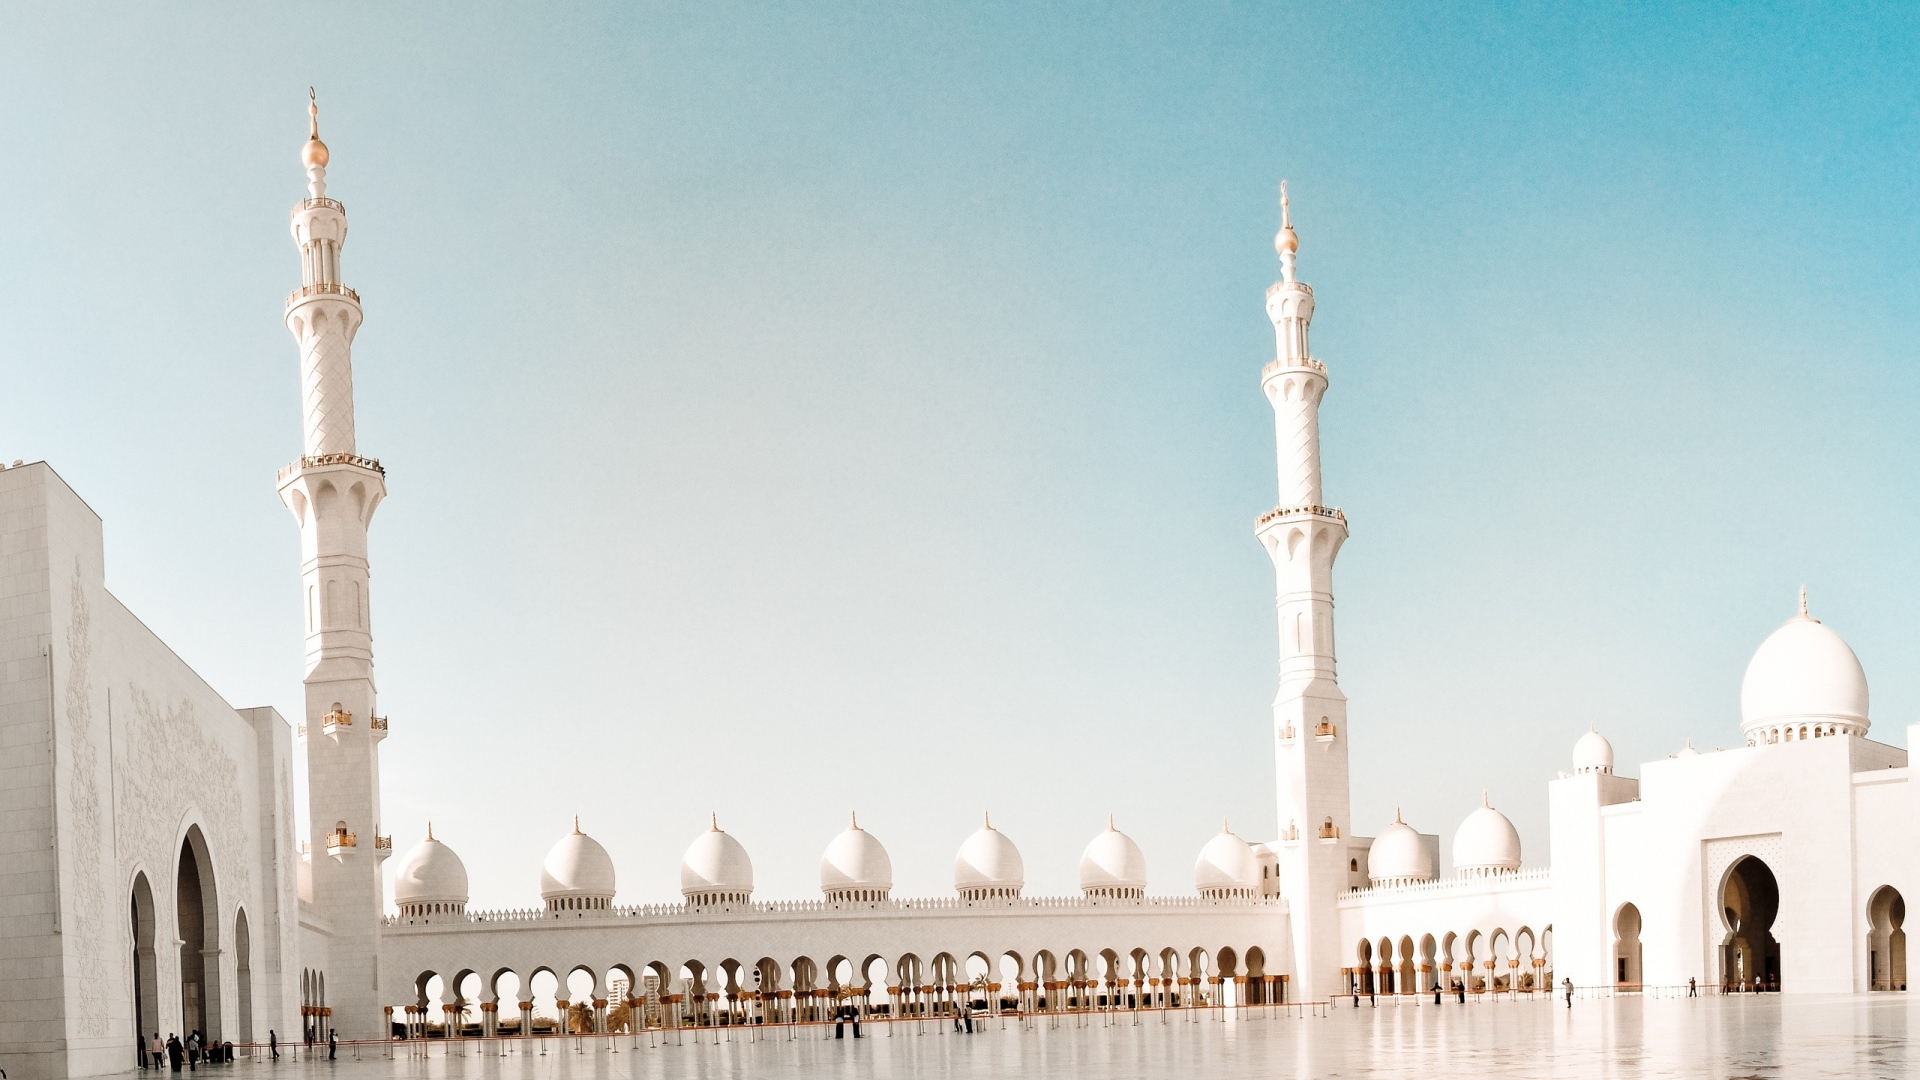 Mosque, White Stone, Weather, Architecture Full Hd - Worldly Life Islamic Quotes - HD Wallpaper